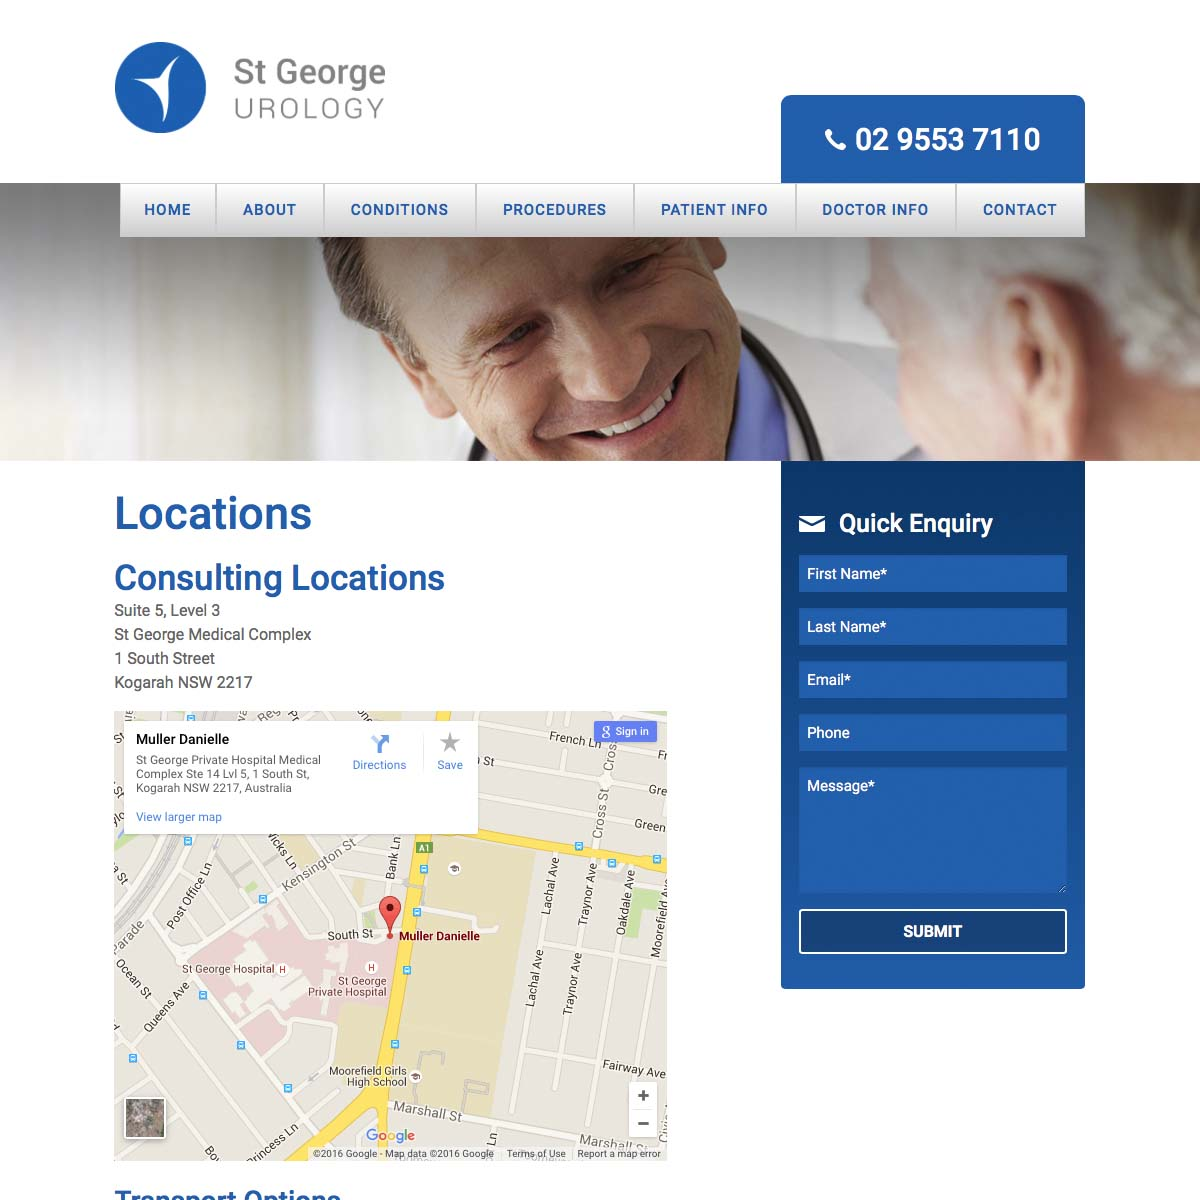 St George Urology Locations